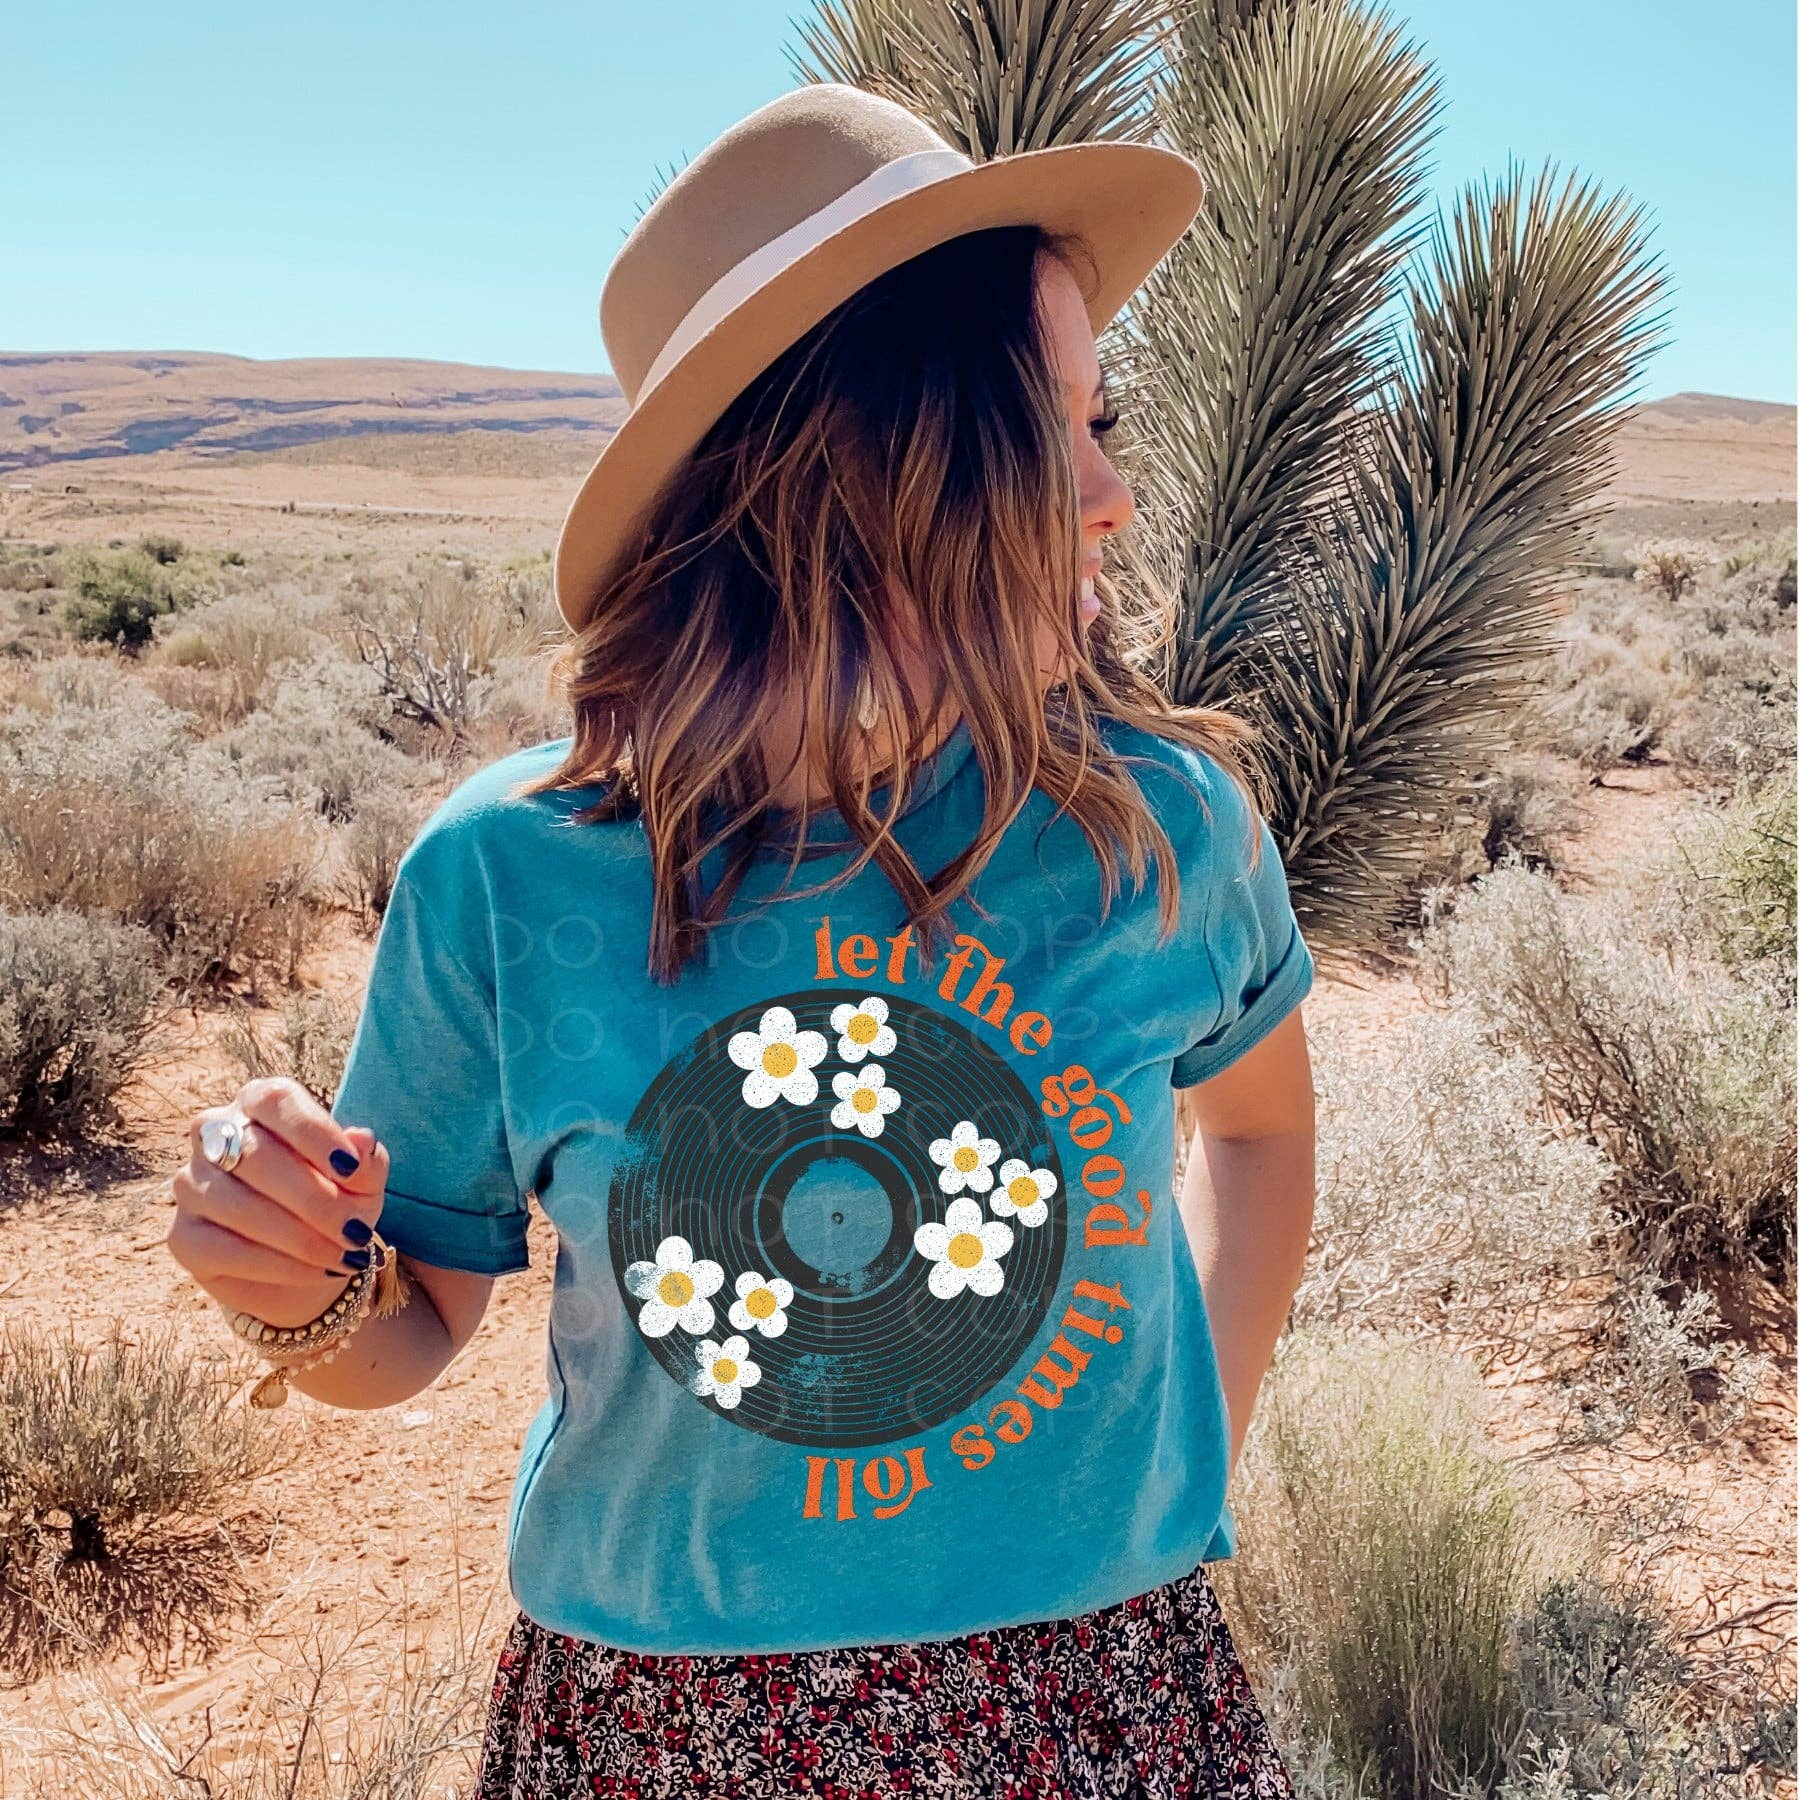 LET THE GOOD TIME ROLL GRAPHIC TEE   Trada Marketplace